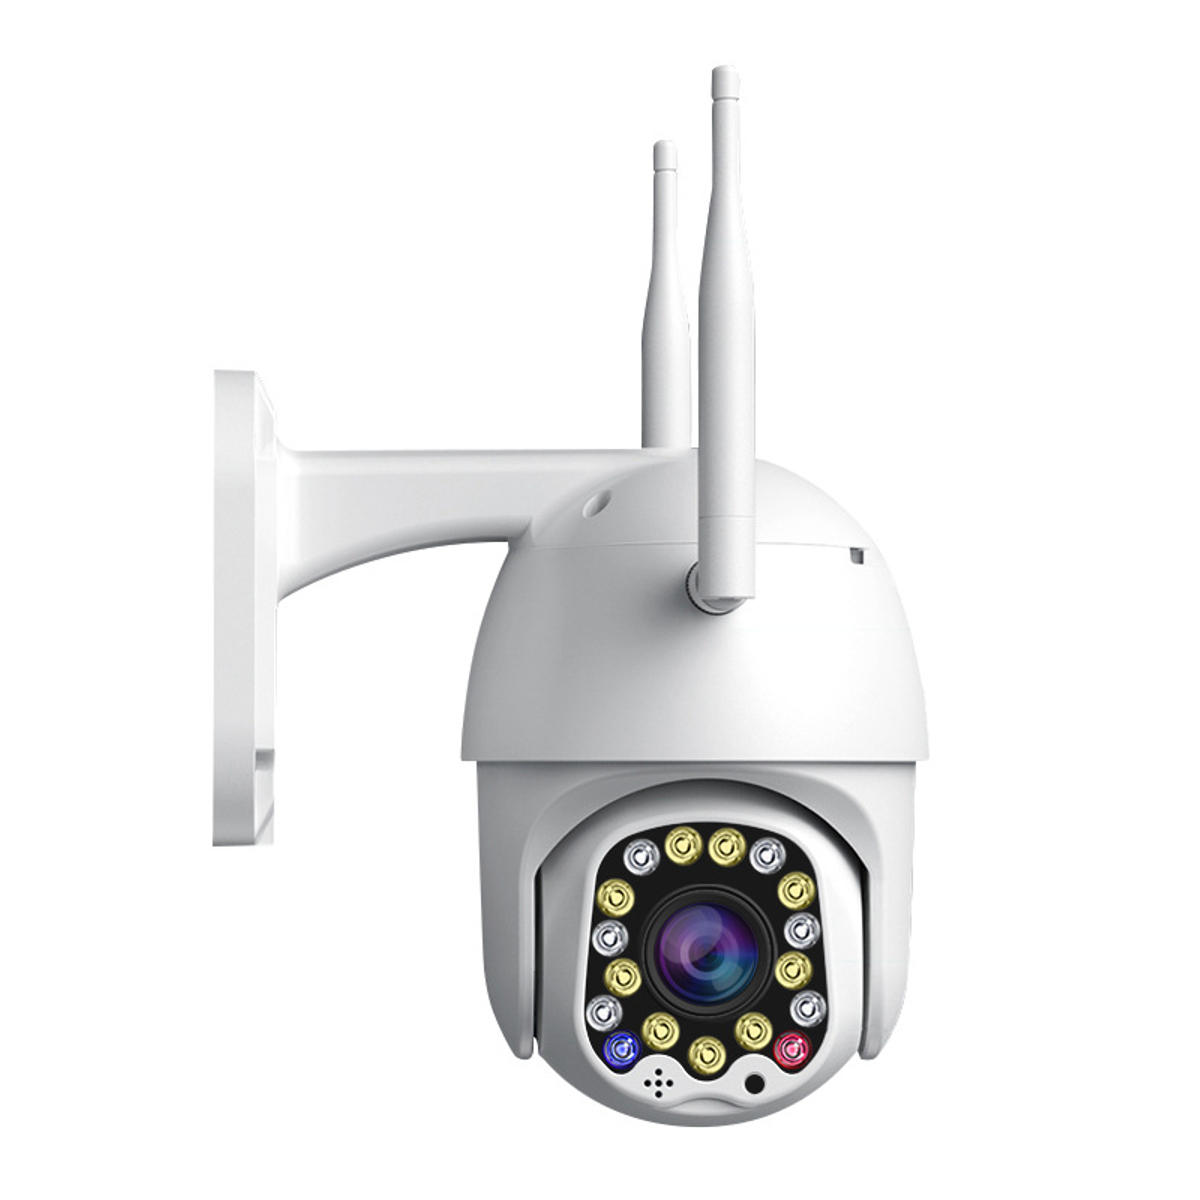 17 LED 1080P WIFI HD 5.0MP IP Surveillance Camera Wireless Outdoor CCTV HD Security Camera